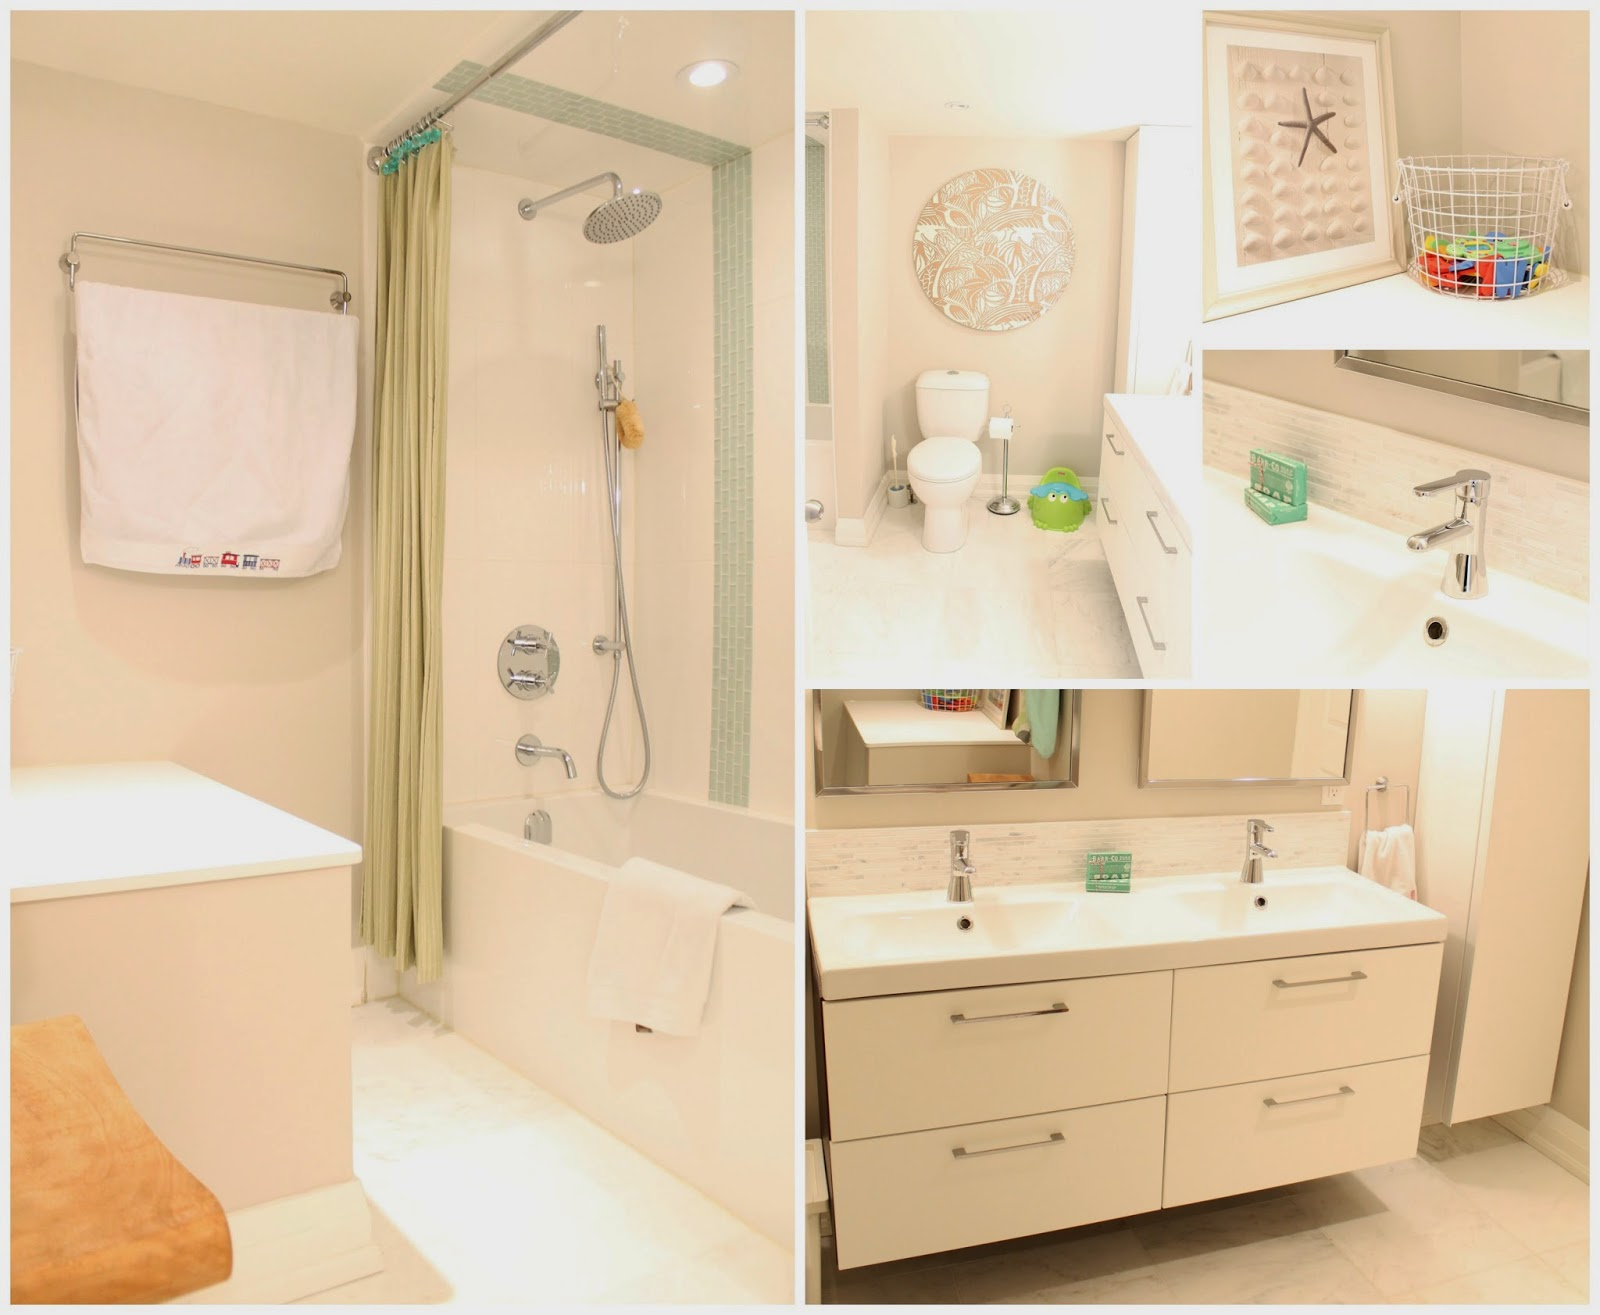 Design style decor home before after kids bathroom for Shared bathroom layout